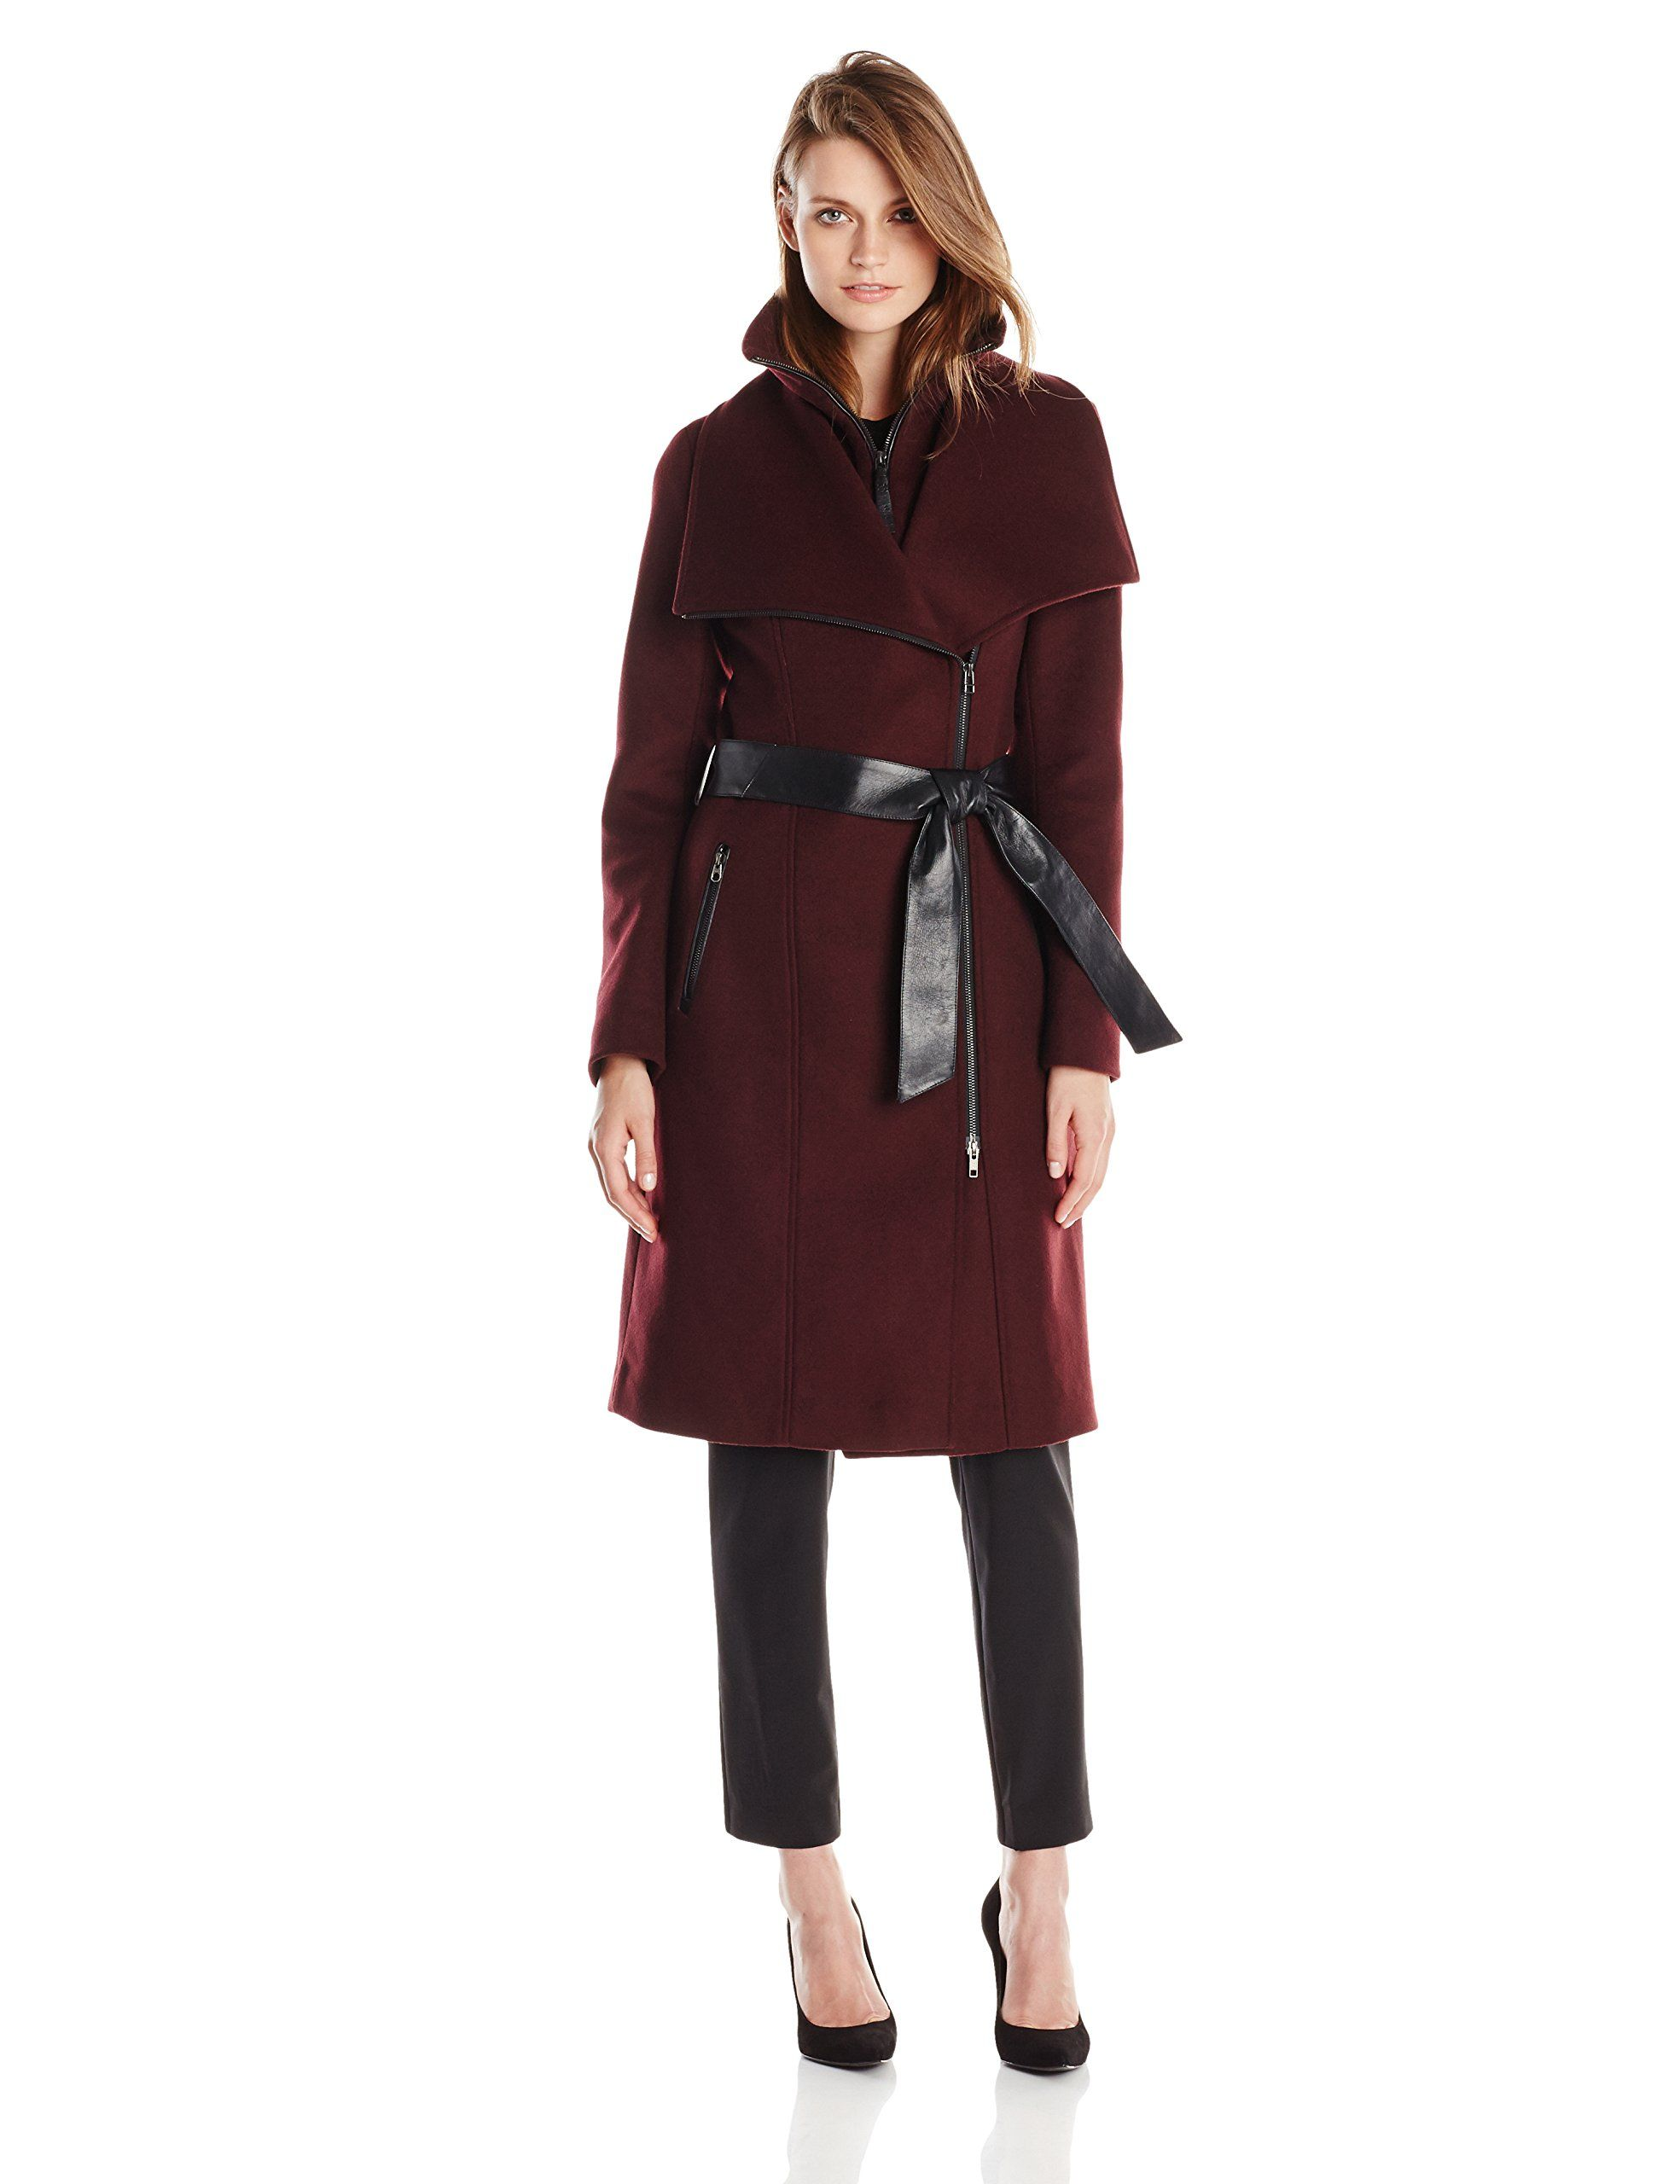 Amazon.com: Mackage Women's Nori Belted Wool-Blend Coat with Leather Trim: Clothing